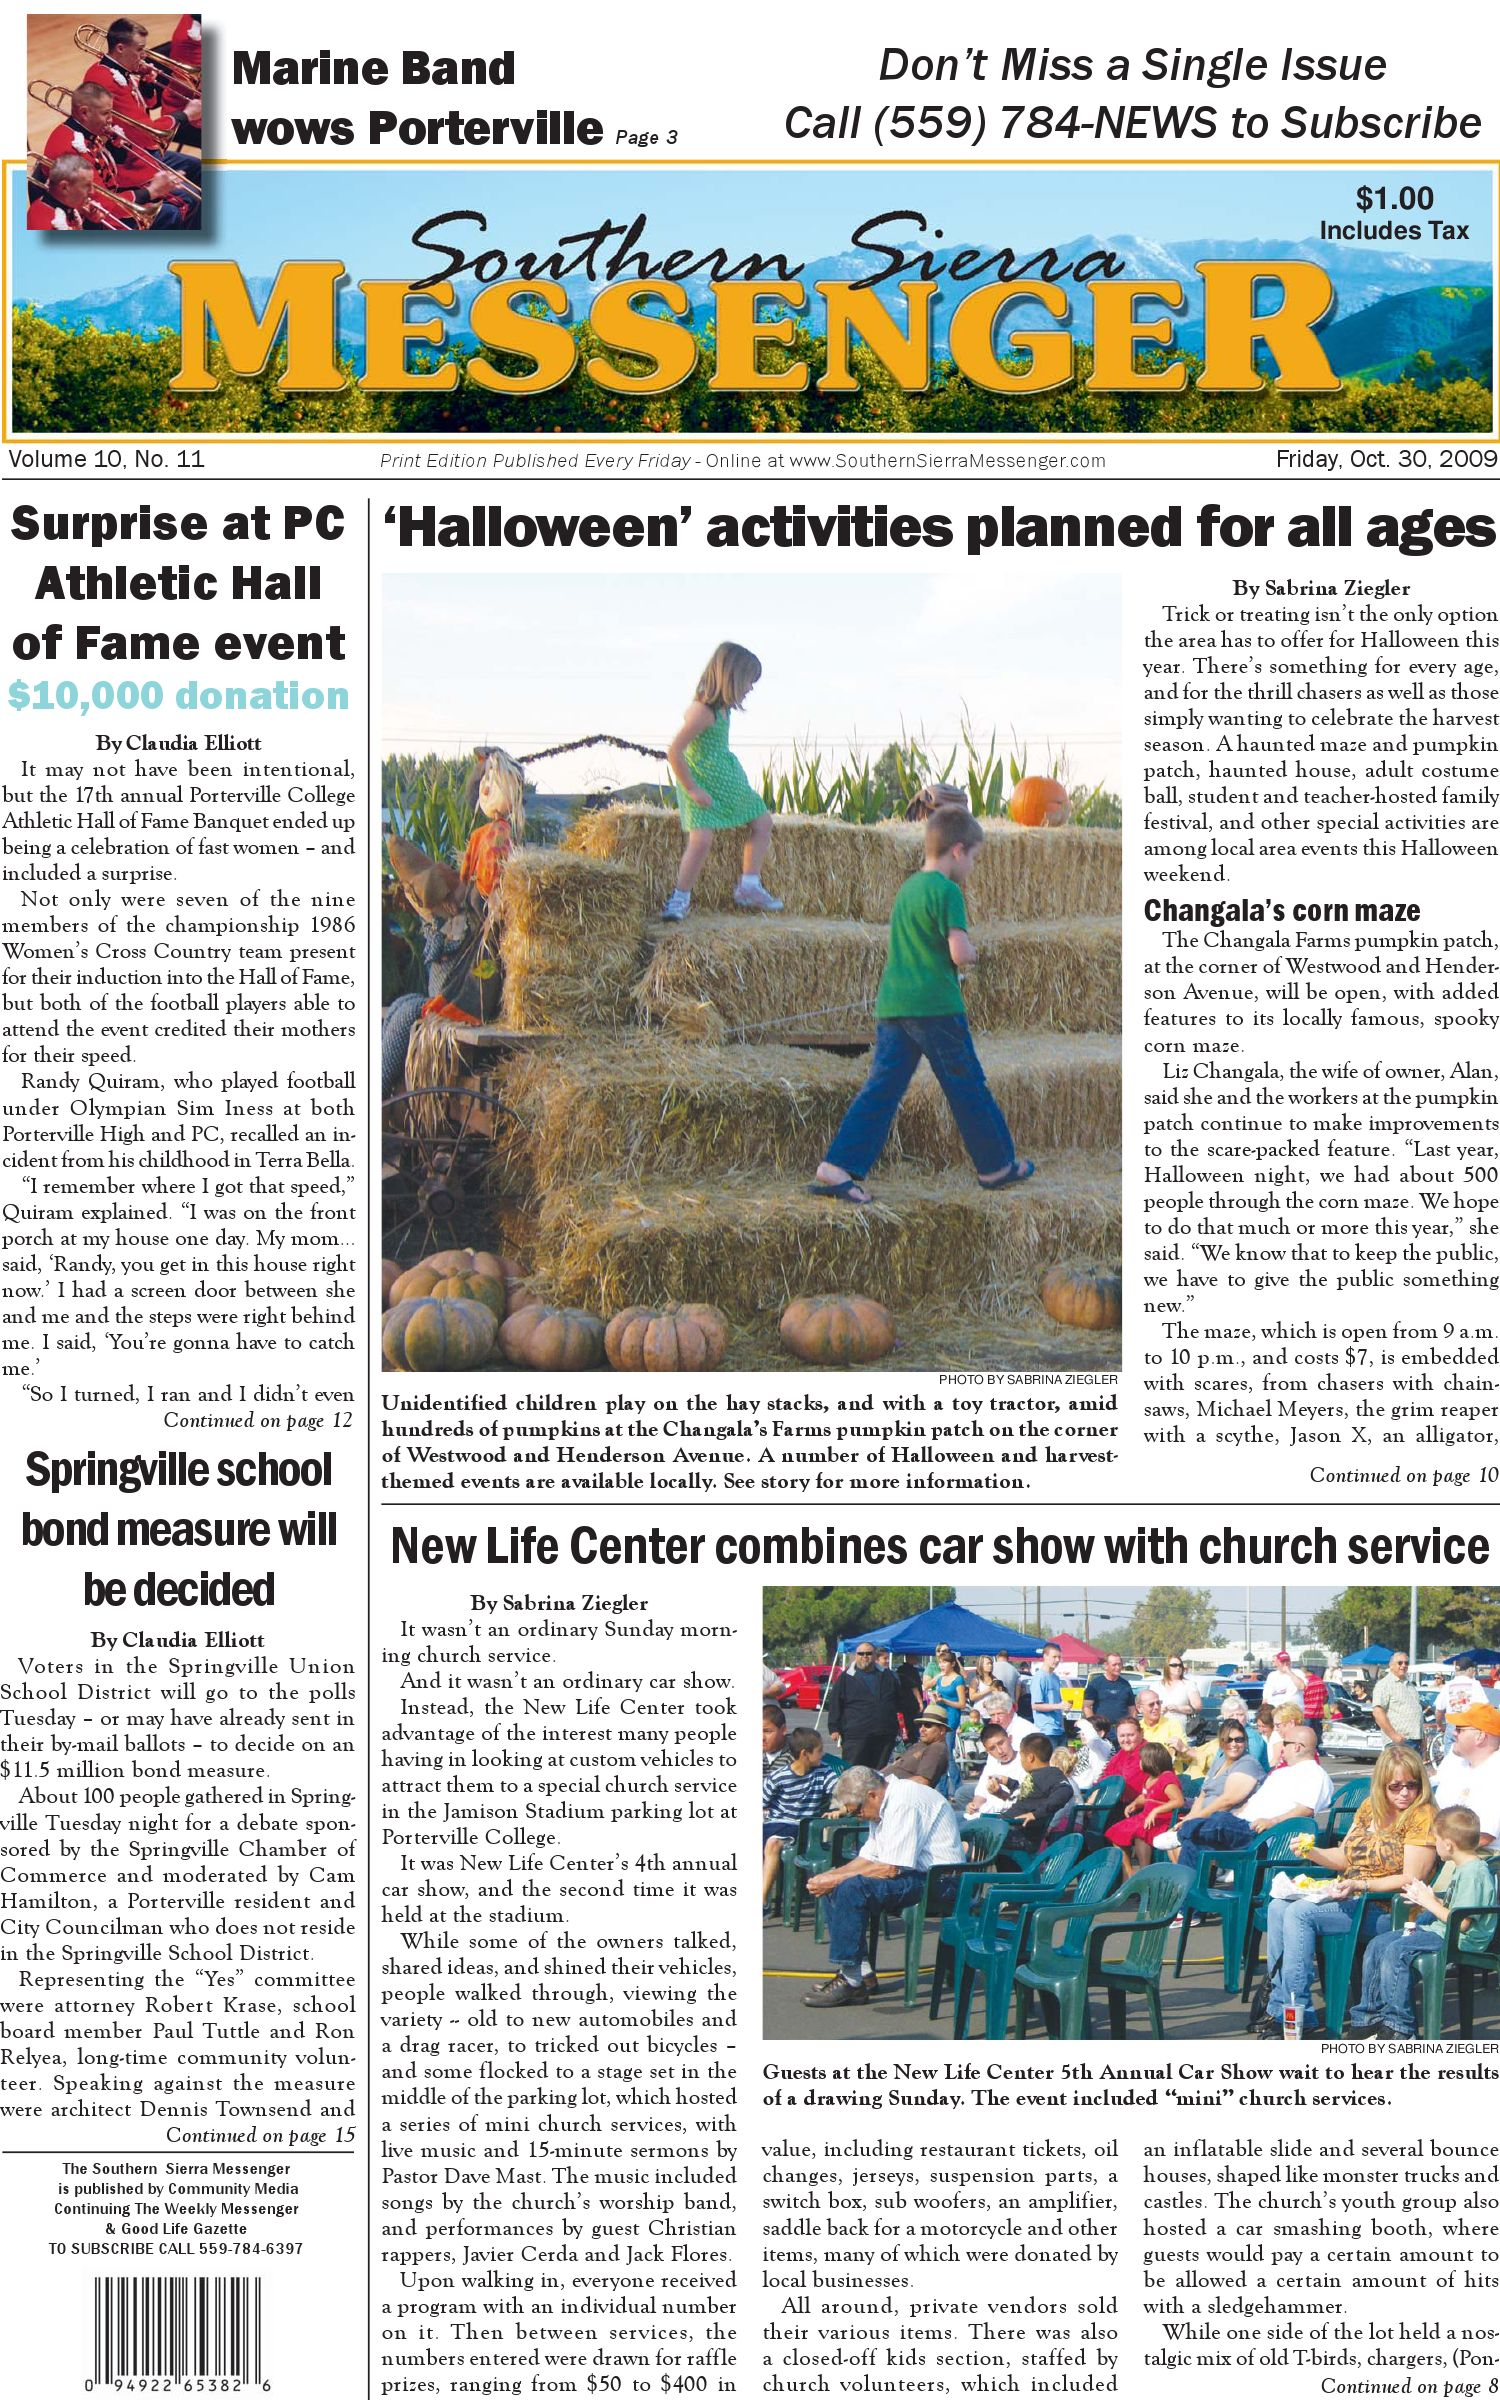 Southern Sierra Messenger, issue of 10/30/09 by Community